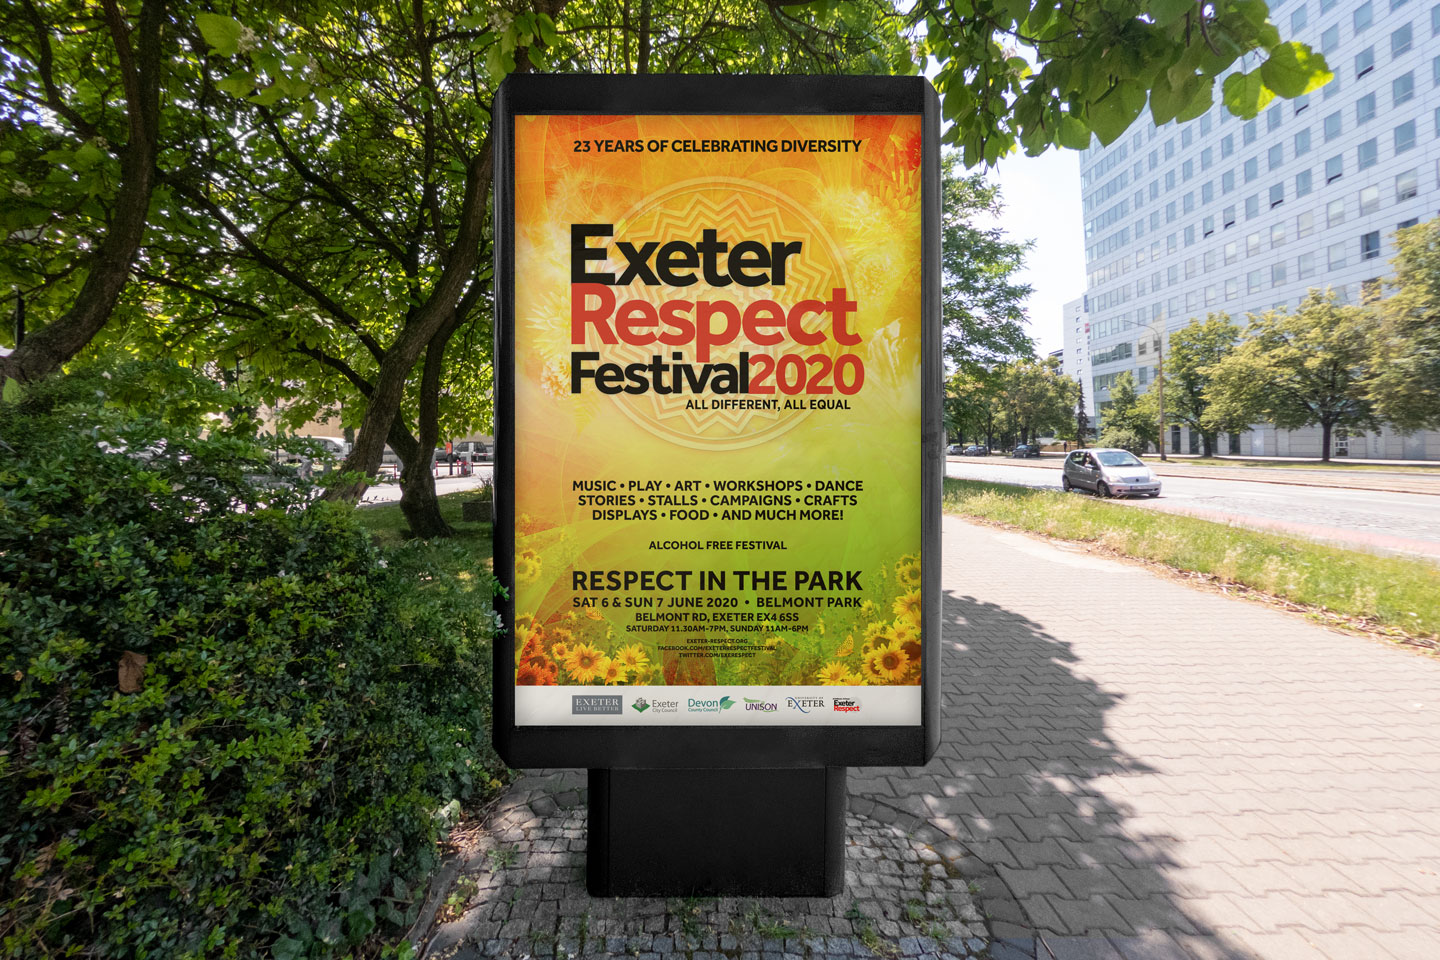 Evolve Promotion - Exeter Respect Outdoor Advertisement